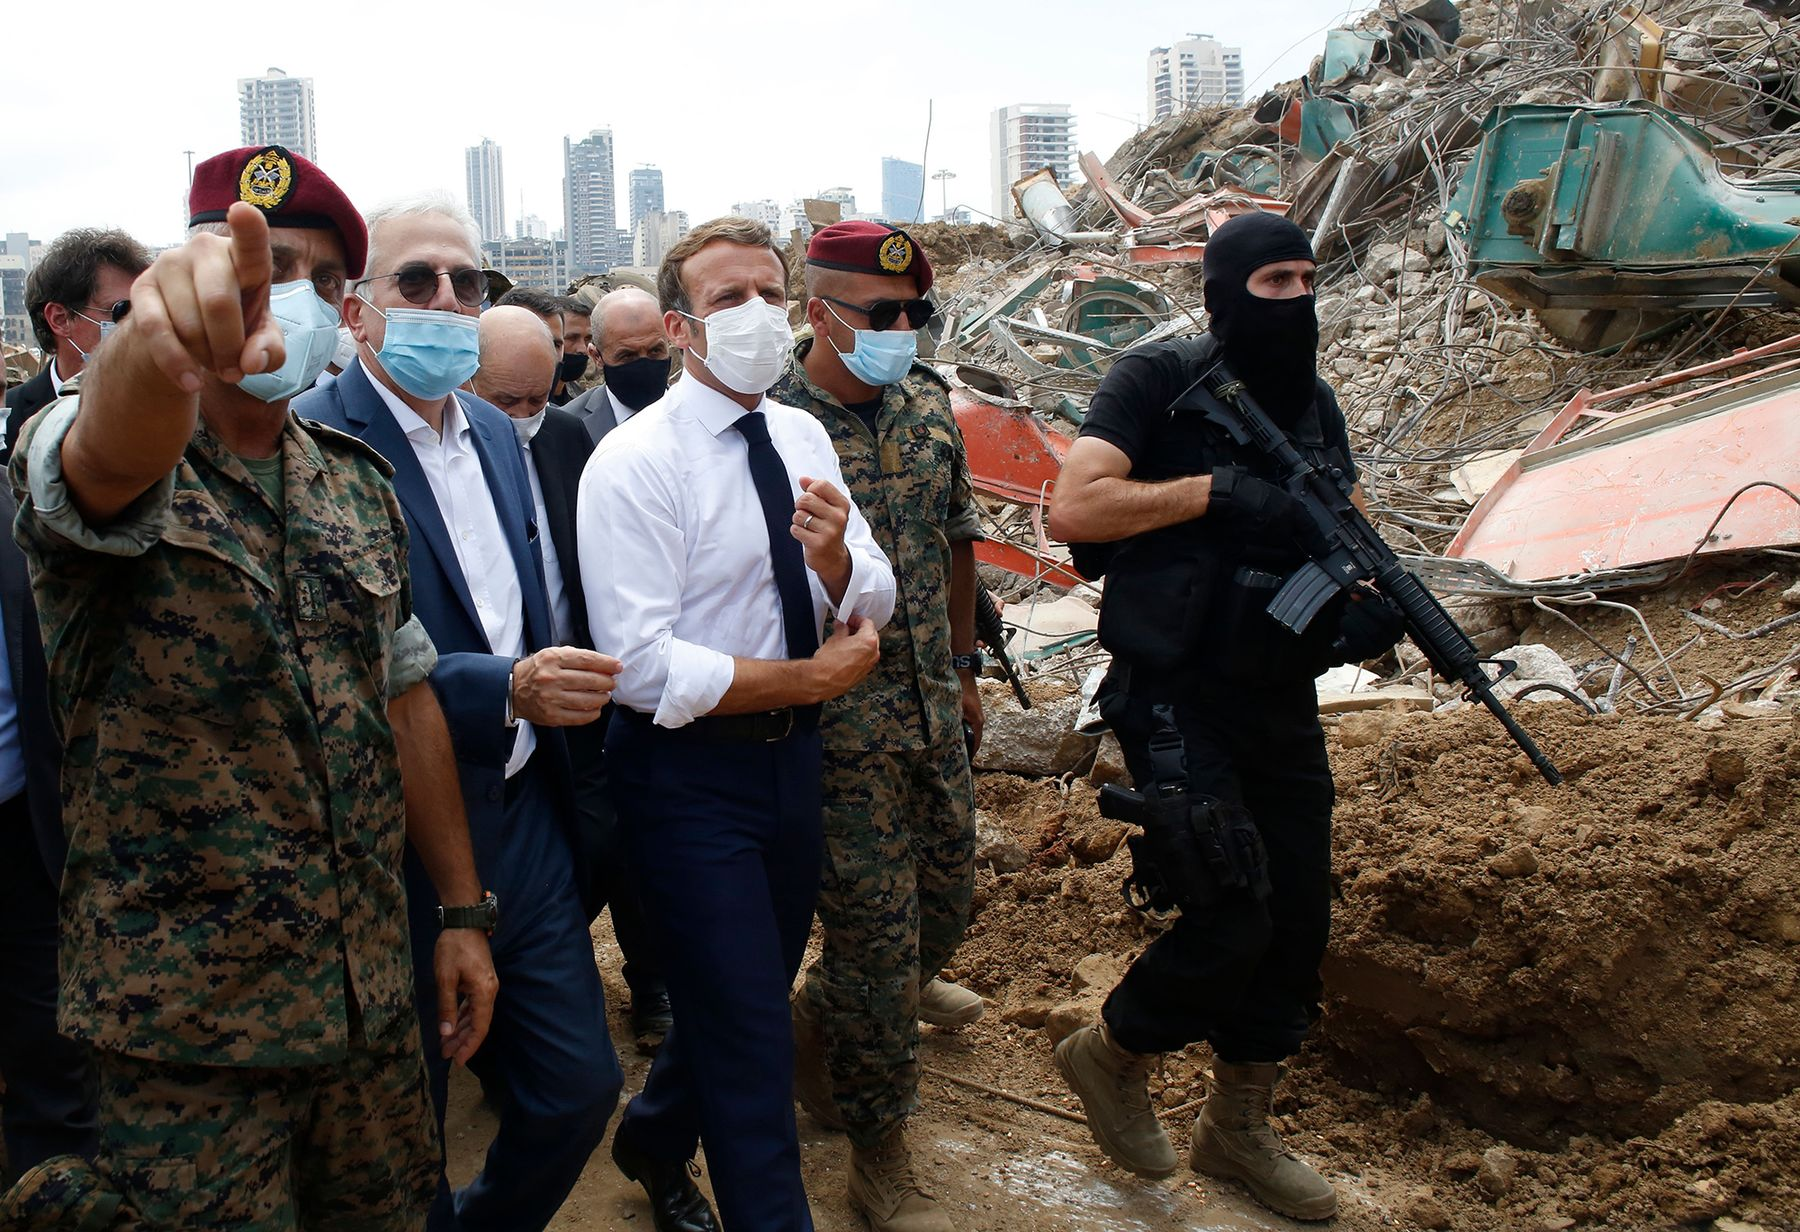 Emmanuel Macron visits the site of the explosion at the Port of Beirut, on Aug. 6.